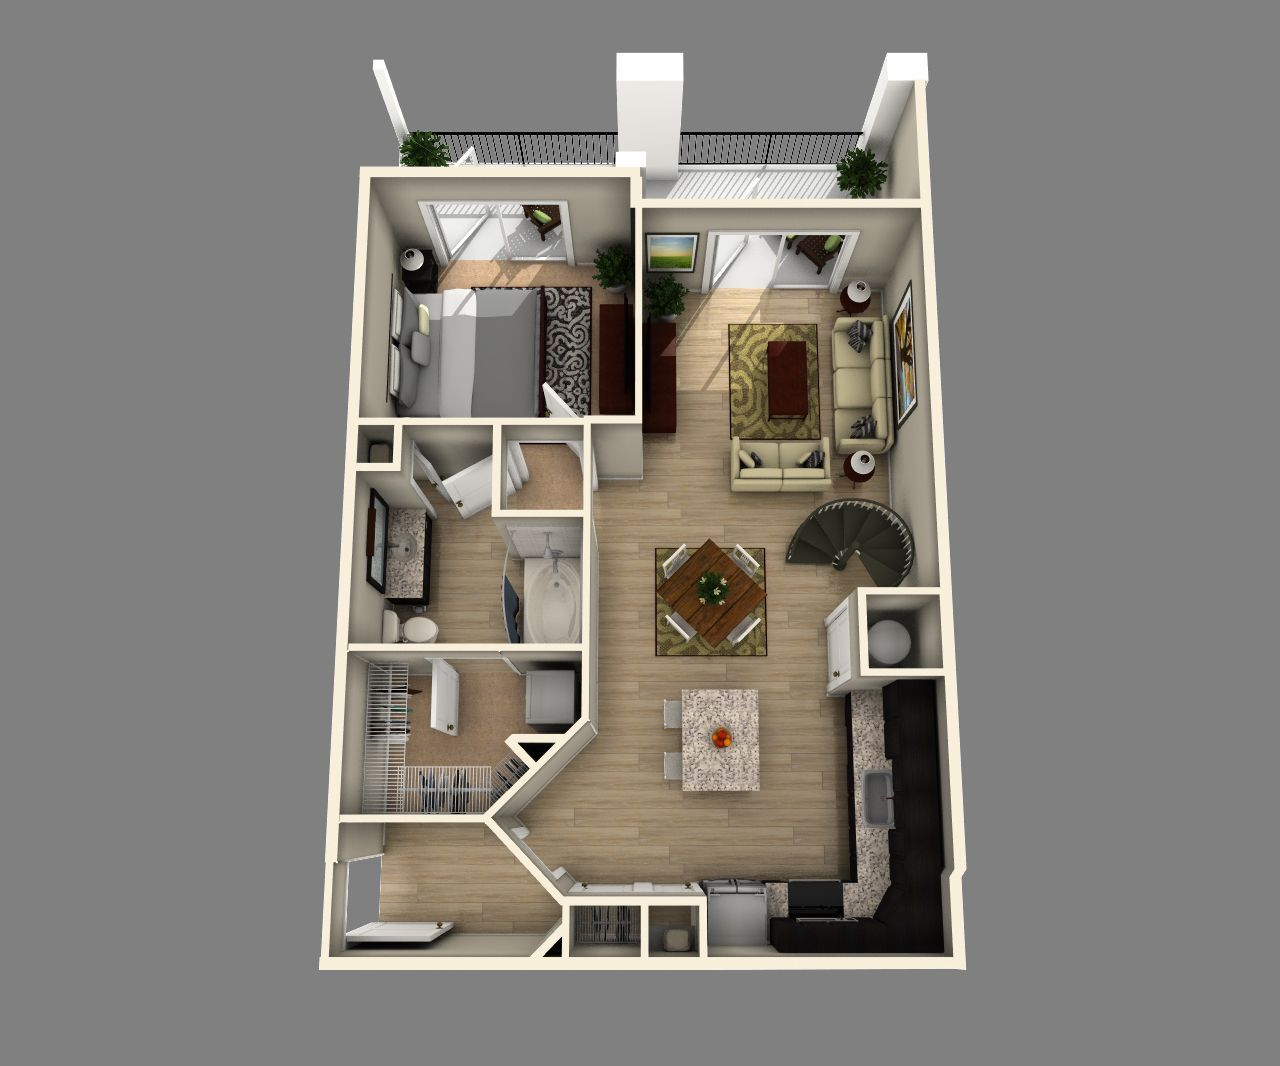 2 Bedroom Apartment Design Plans 20' x 24' floor plan - google search | projects to try | pinterest